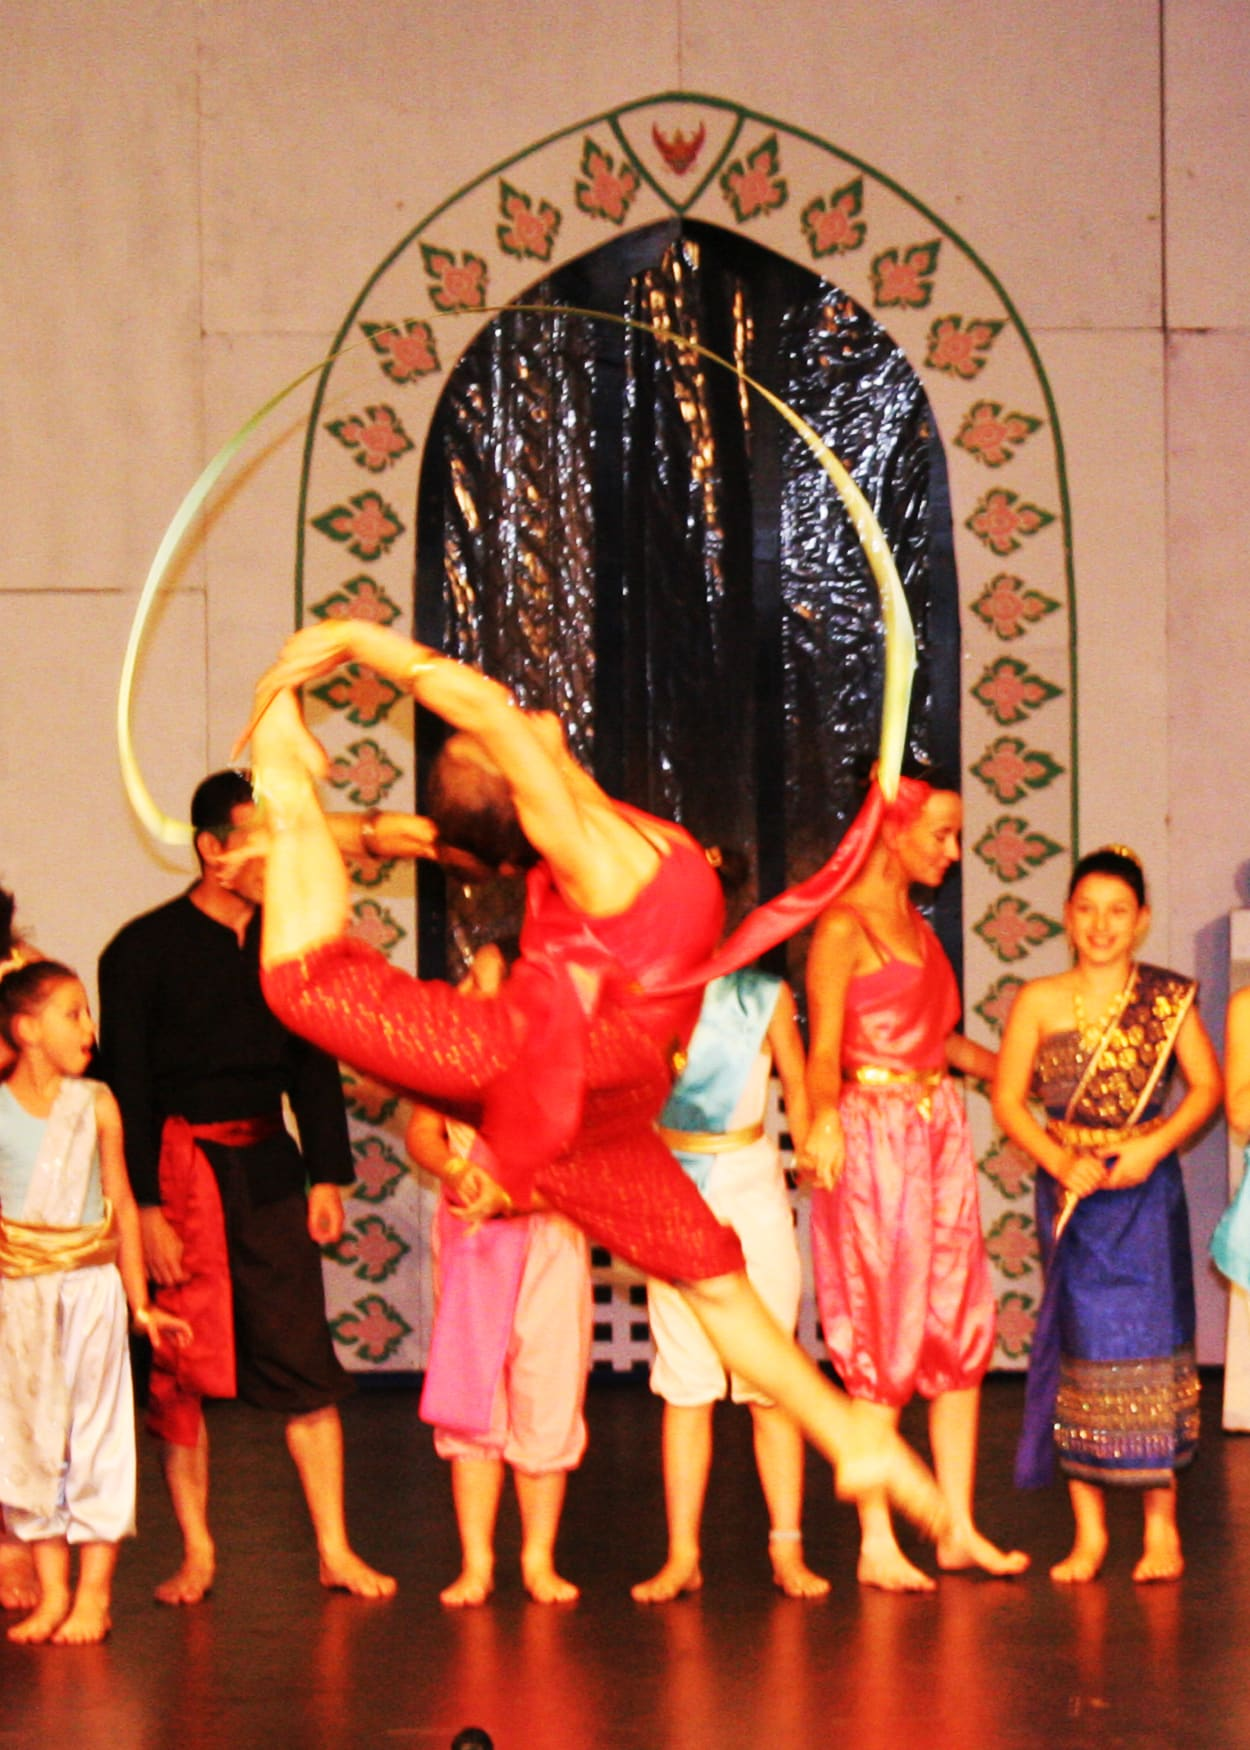 King and I 517 copy.jpg